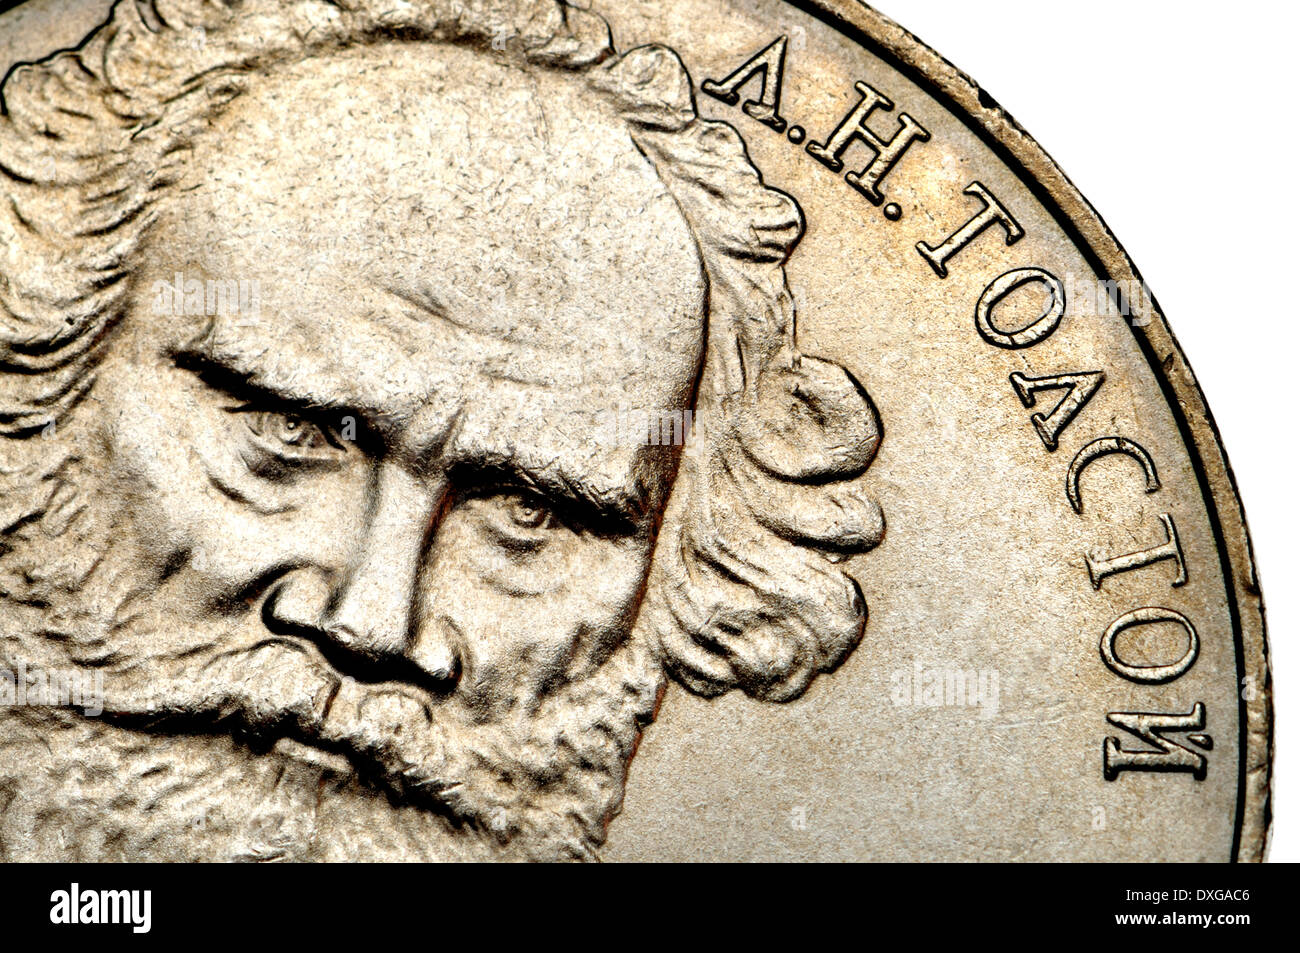 Russian 1 Rouble Coin, 1988. Leo Tolstoy (Count Lev Nikolayevich Tolstoy - Writer - 1828-1910) Name written in Cyrillic - Stock Image